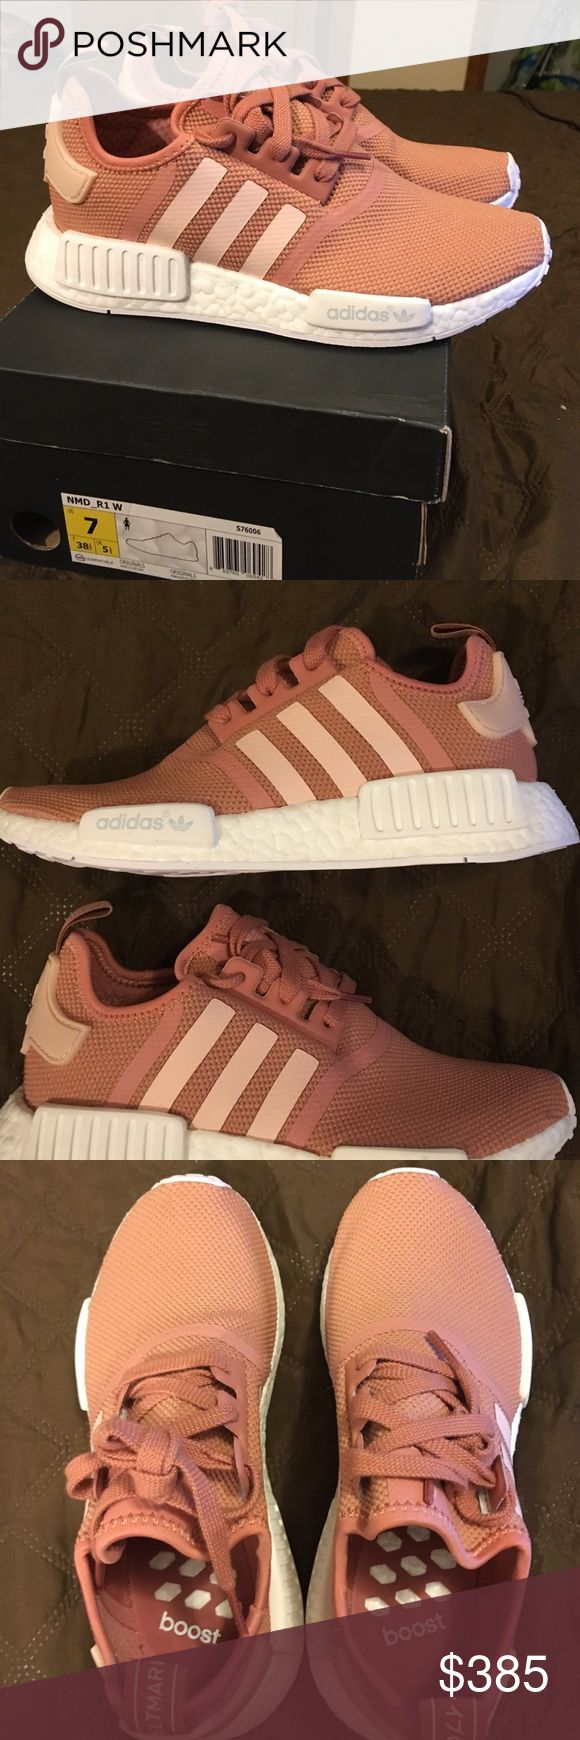 Adidas NMD R1 - Raw Pink Salmon Sz 7.5 Ignore listing price and msg me for  better prices.     Brand new authentic pair of a hard to find/rare Adidas NMD colourway.  If you like the shoe but it's not your size please msg me and I can find it. Adidas Shoes Sneakers